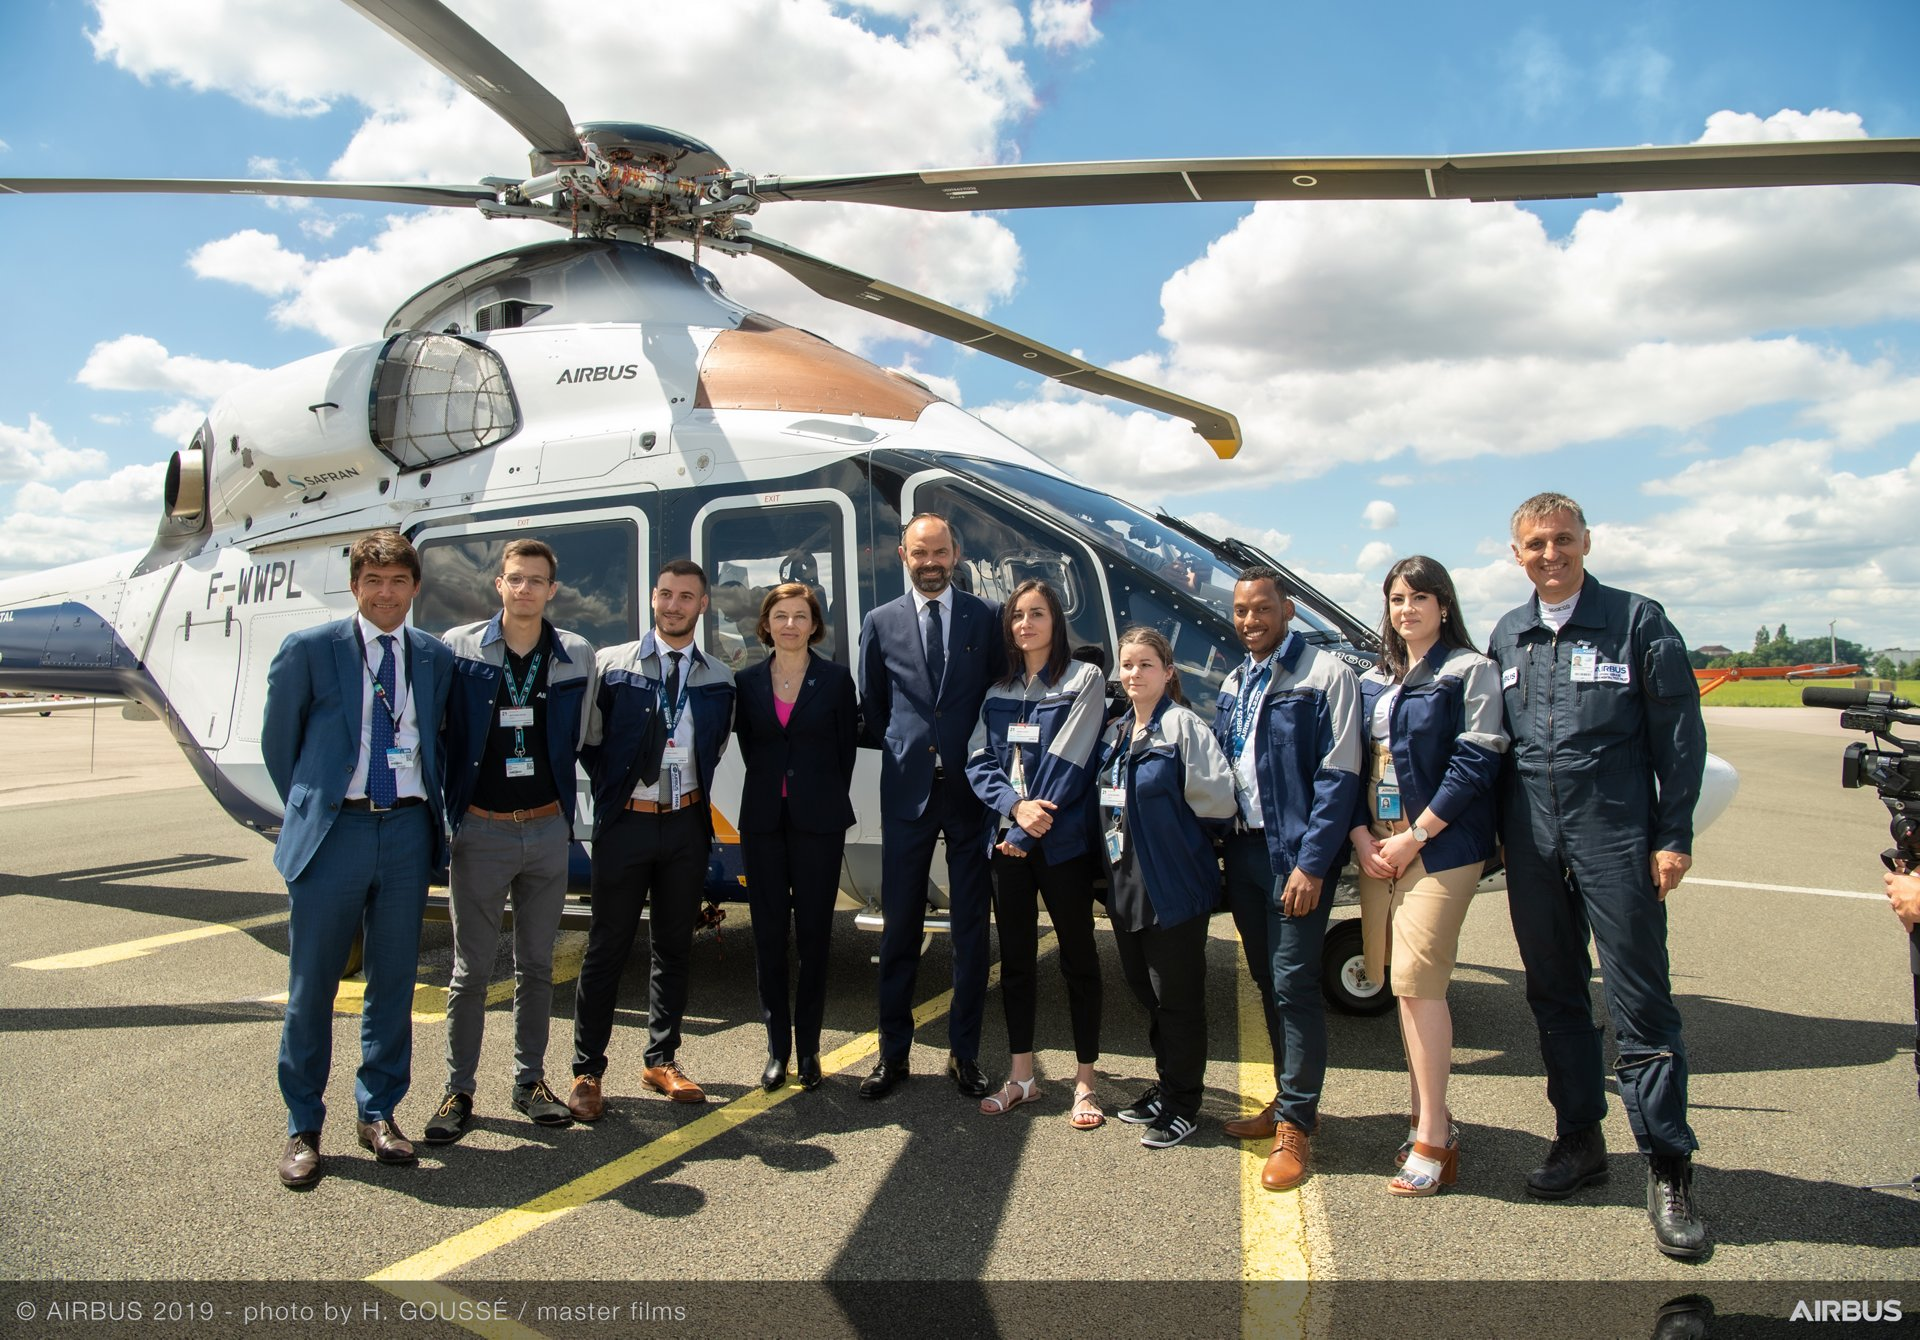 Edouard Philippe French Prime Minister Visit at Paris Air Show Day 5